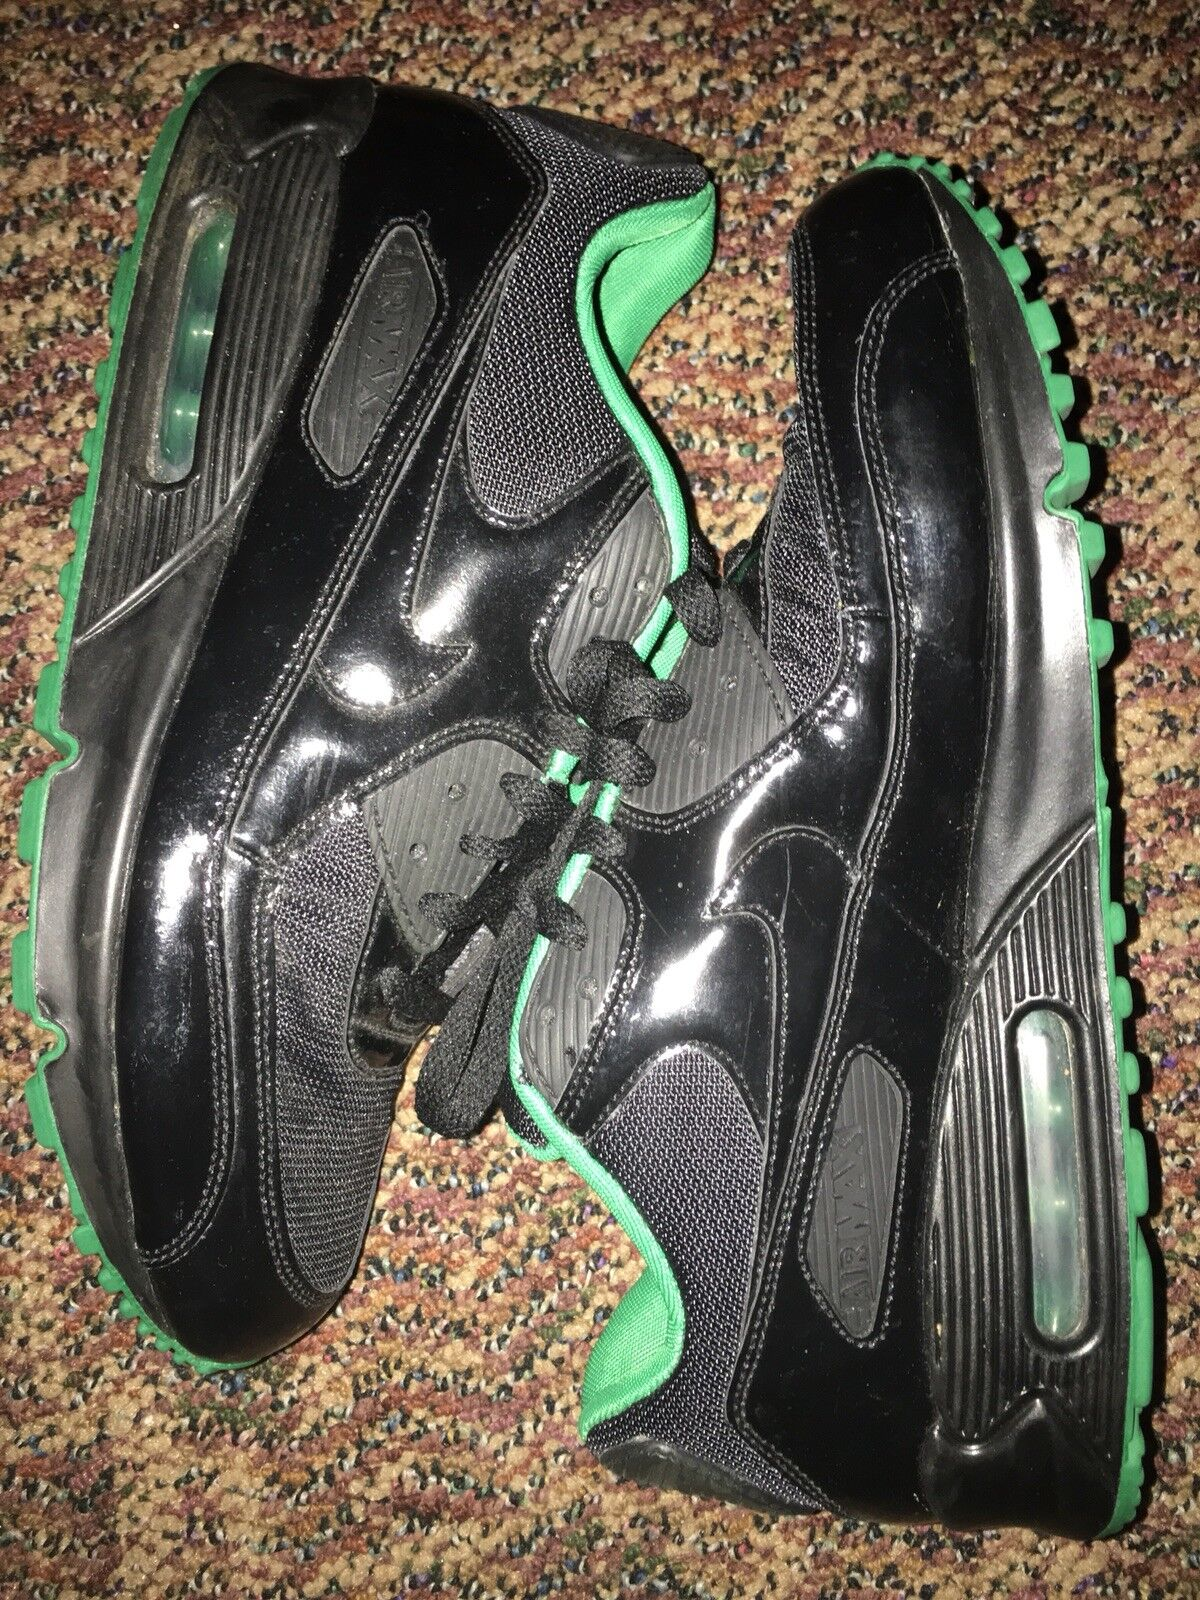 NIKE AIR MAX 90 PREMIUM   RARE     VERY GOOD CONDITION   NO RESERVE   SEE DETAILS  acc3f6